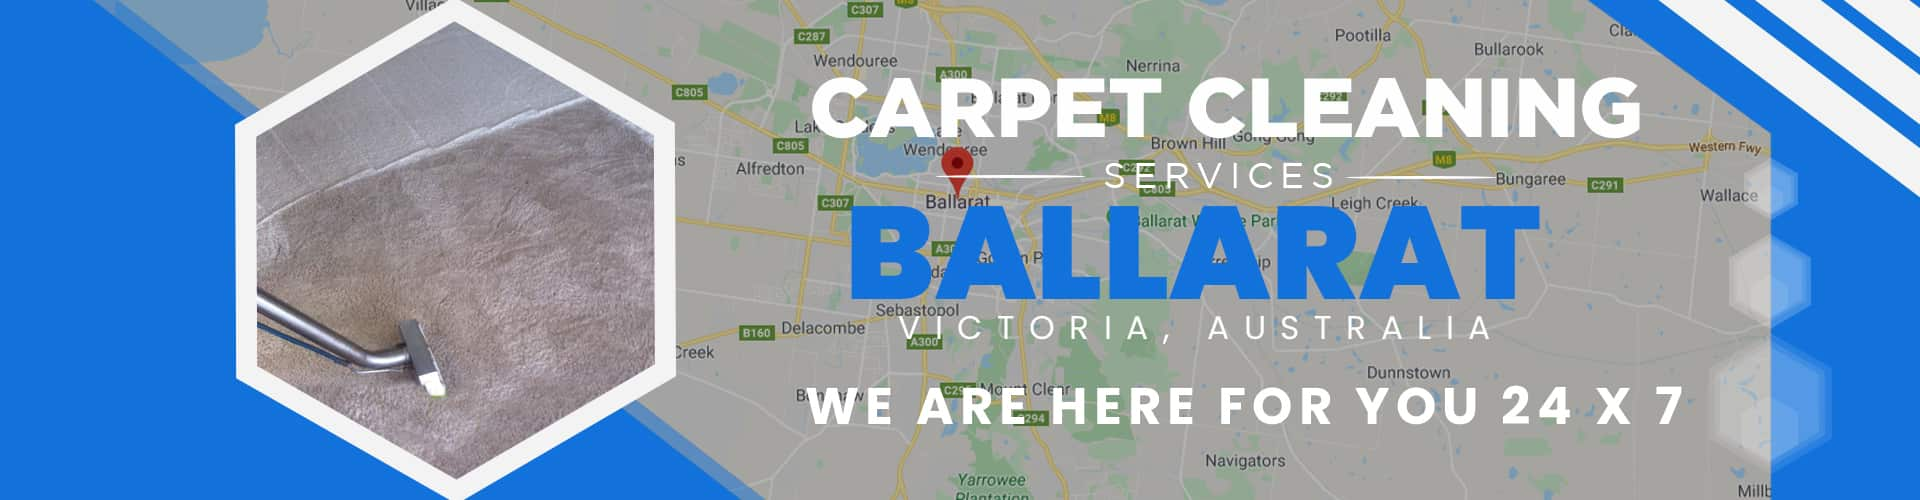 Carpet Cleaning Ballarat